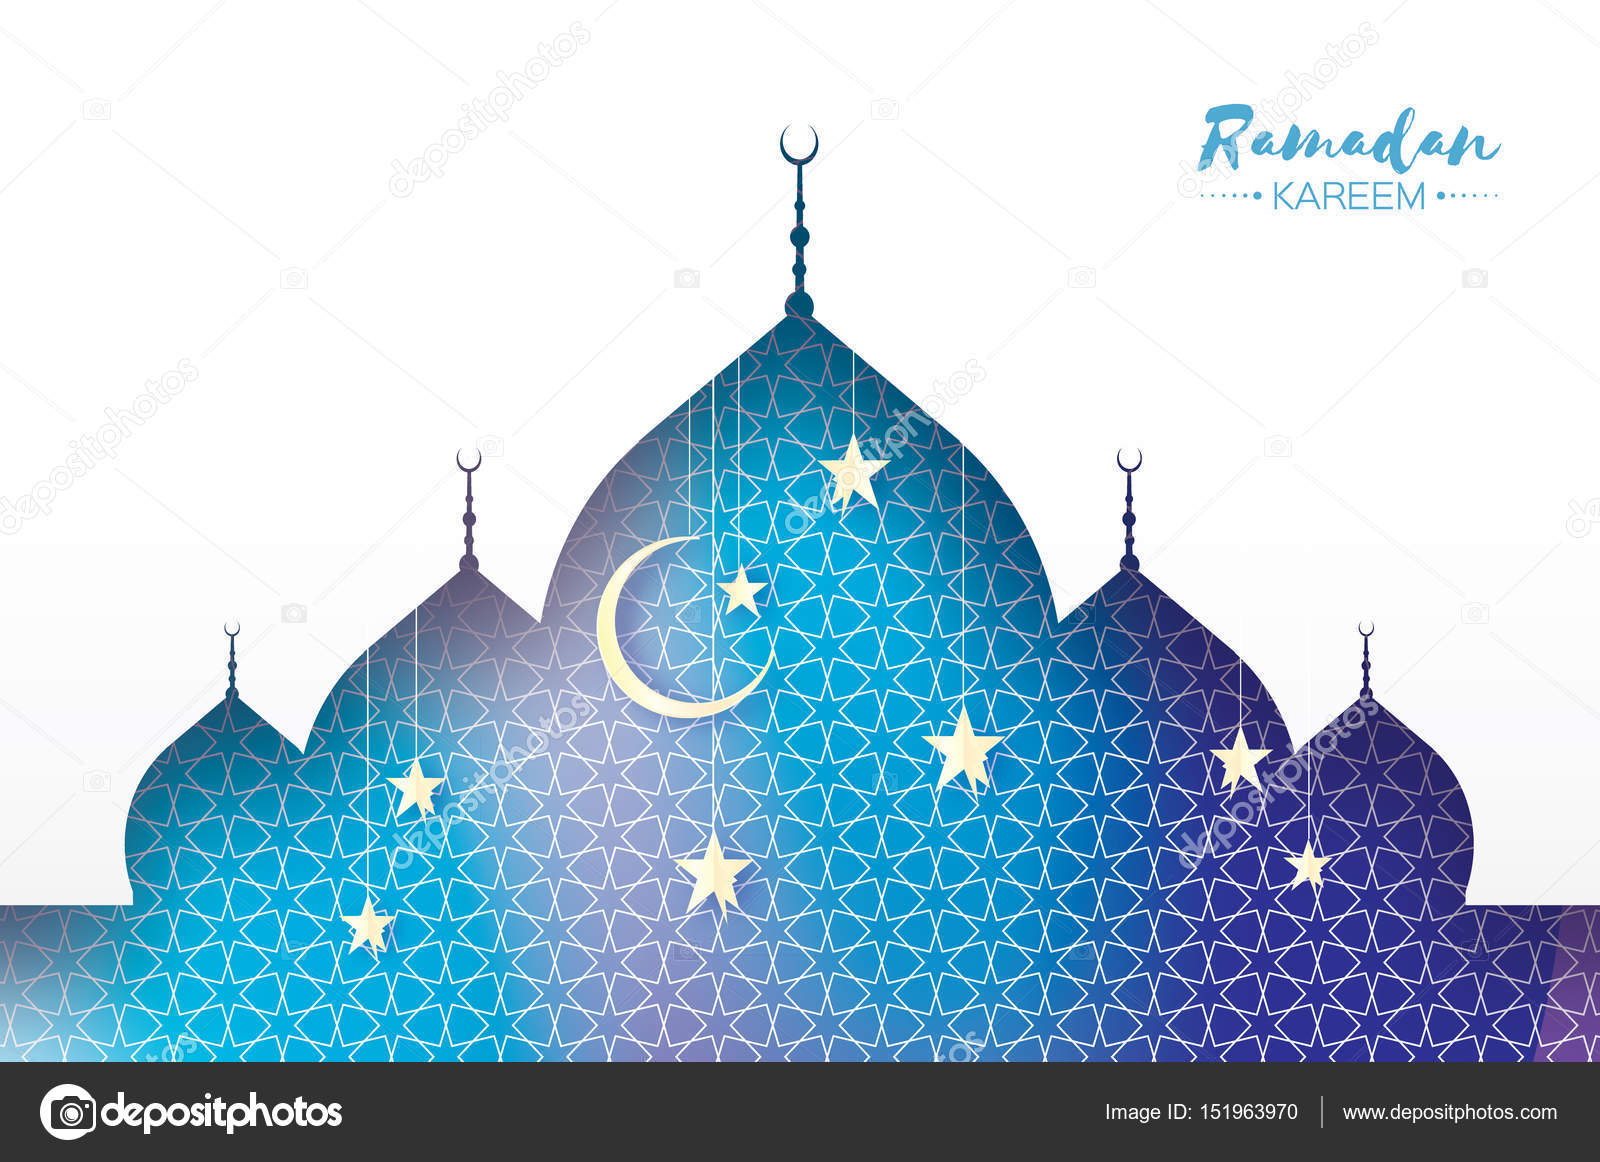 Ramadan Kareem Arabic Window Mosque White Stars In Paper Cut Style Arabesque Pattern Crescent Moon Holy Month Of Muslim Symbol Islam